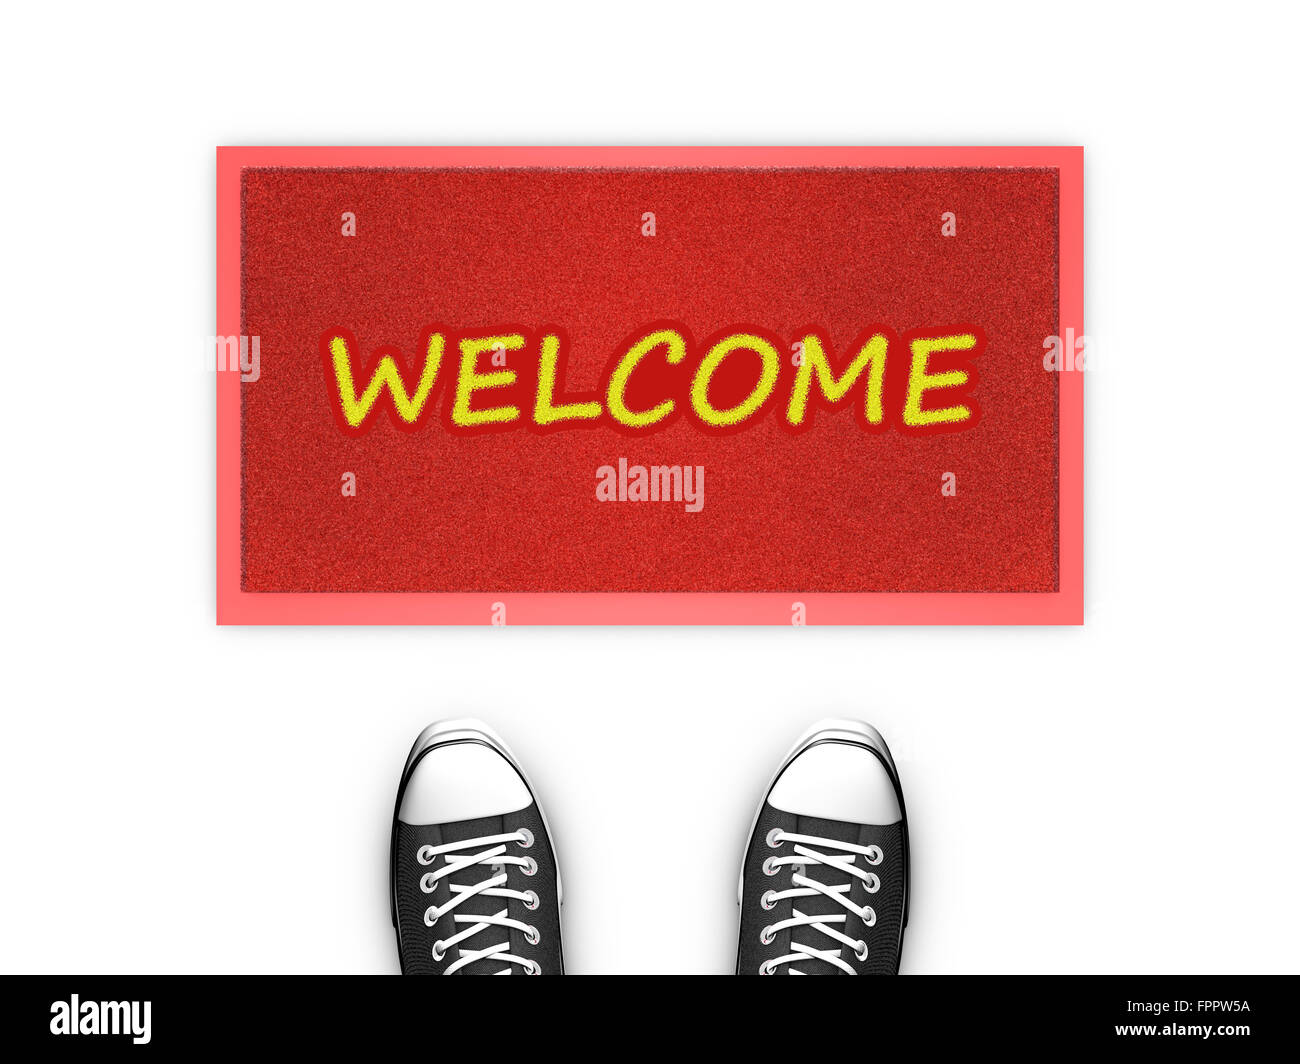 Concept illustration showing shoes in front of a Welcome red door map. - Stock Image